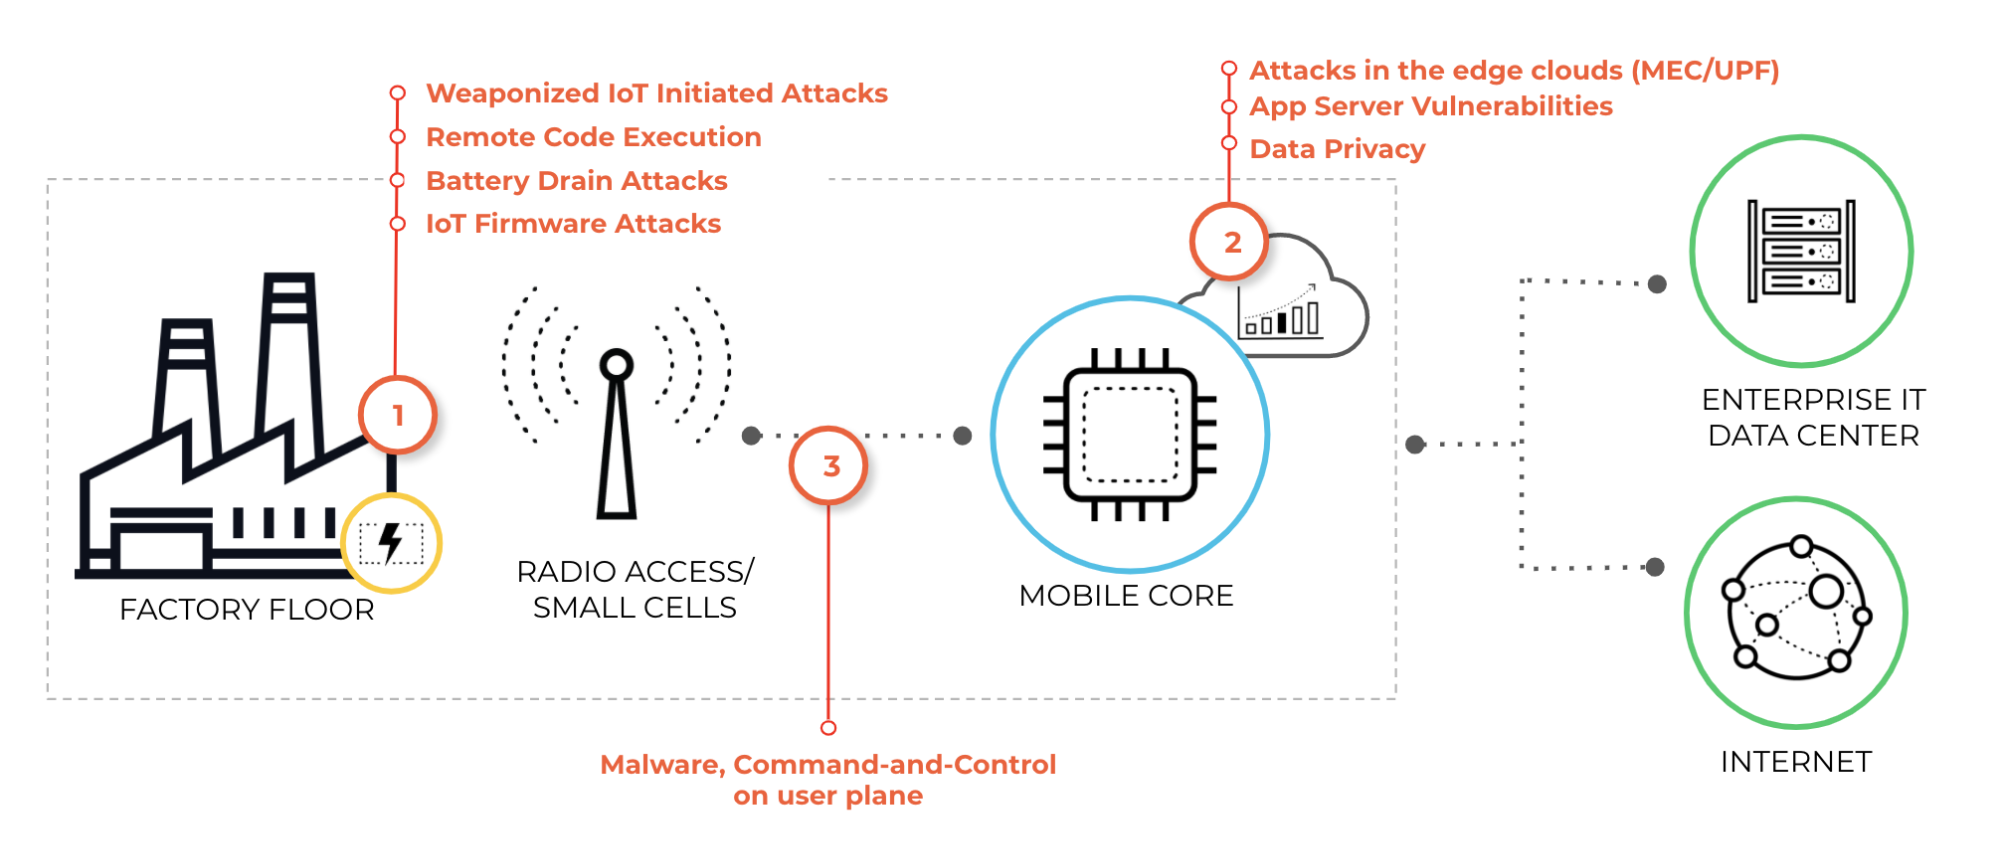 The figure shows 5G security considerations in an enterprise 5G deployment, including weaponized IoT initiated attacks, remote code execution, battery drain attacks, IoT firmware attacks, attacks in the edge clouds (MEC/UPF), app server vulnerabilities, data privacy, malware, and command and control on user plane.